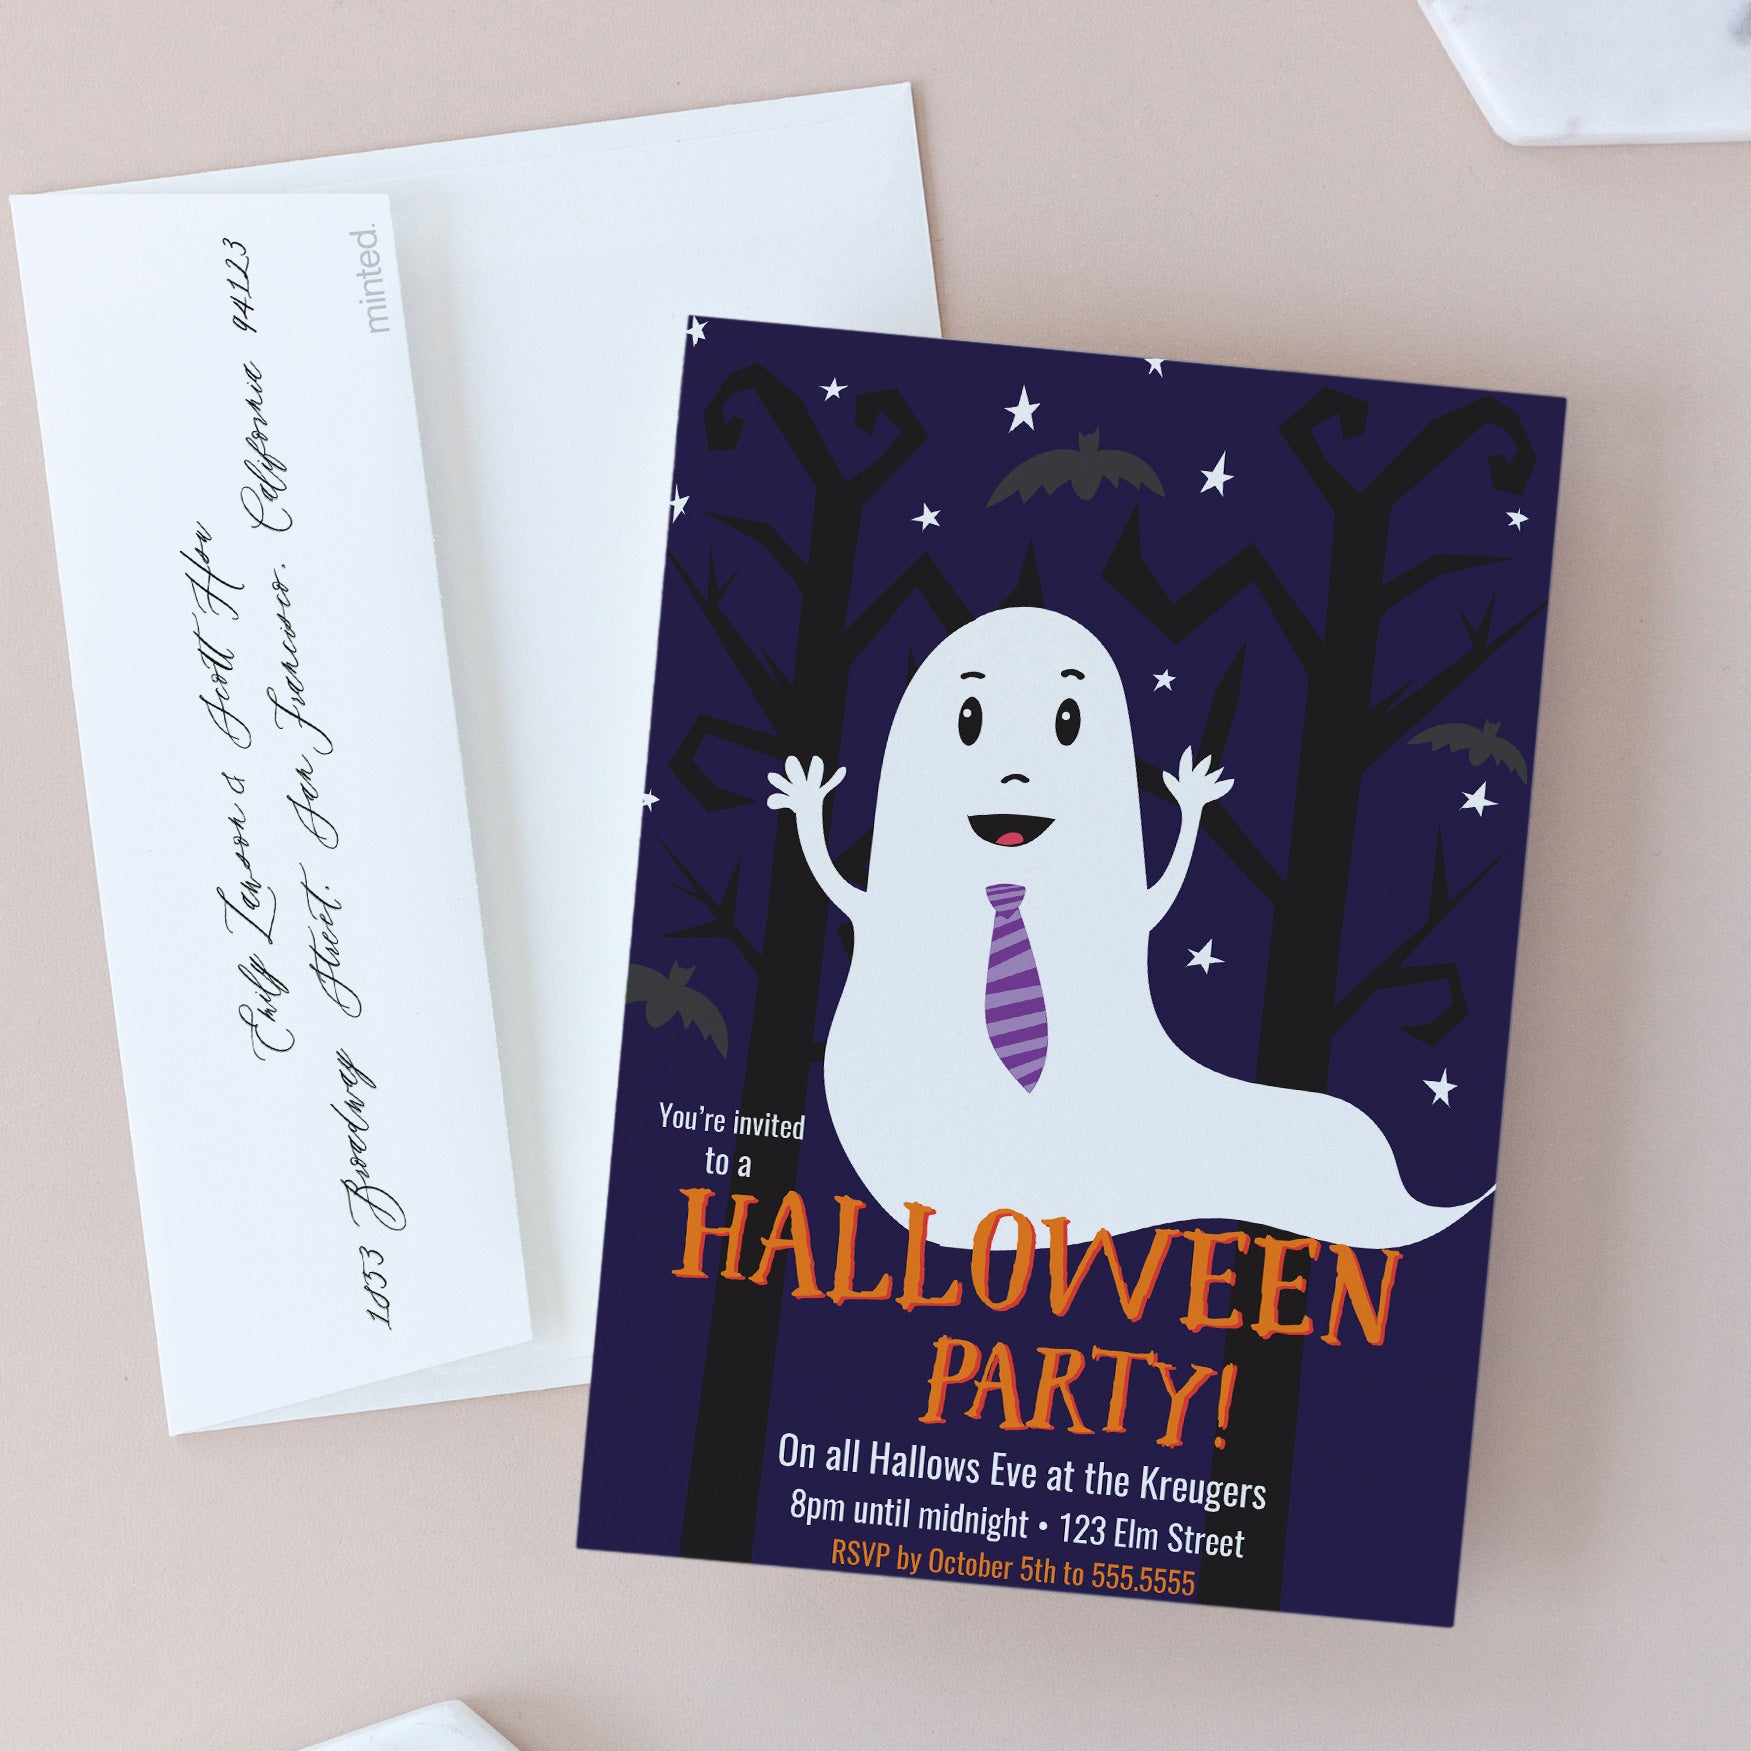 photo regarding Printable Halloween Party Invitations known as Printable Halloween Celebration Invites - Spooky Ghost